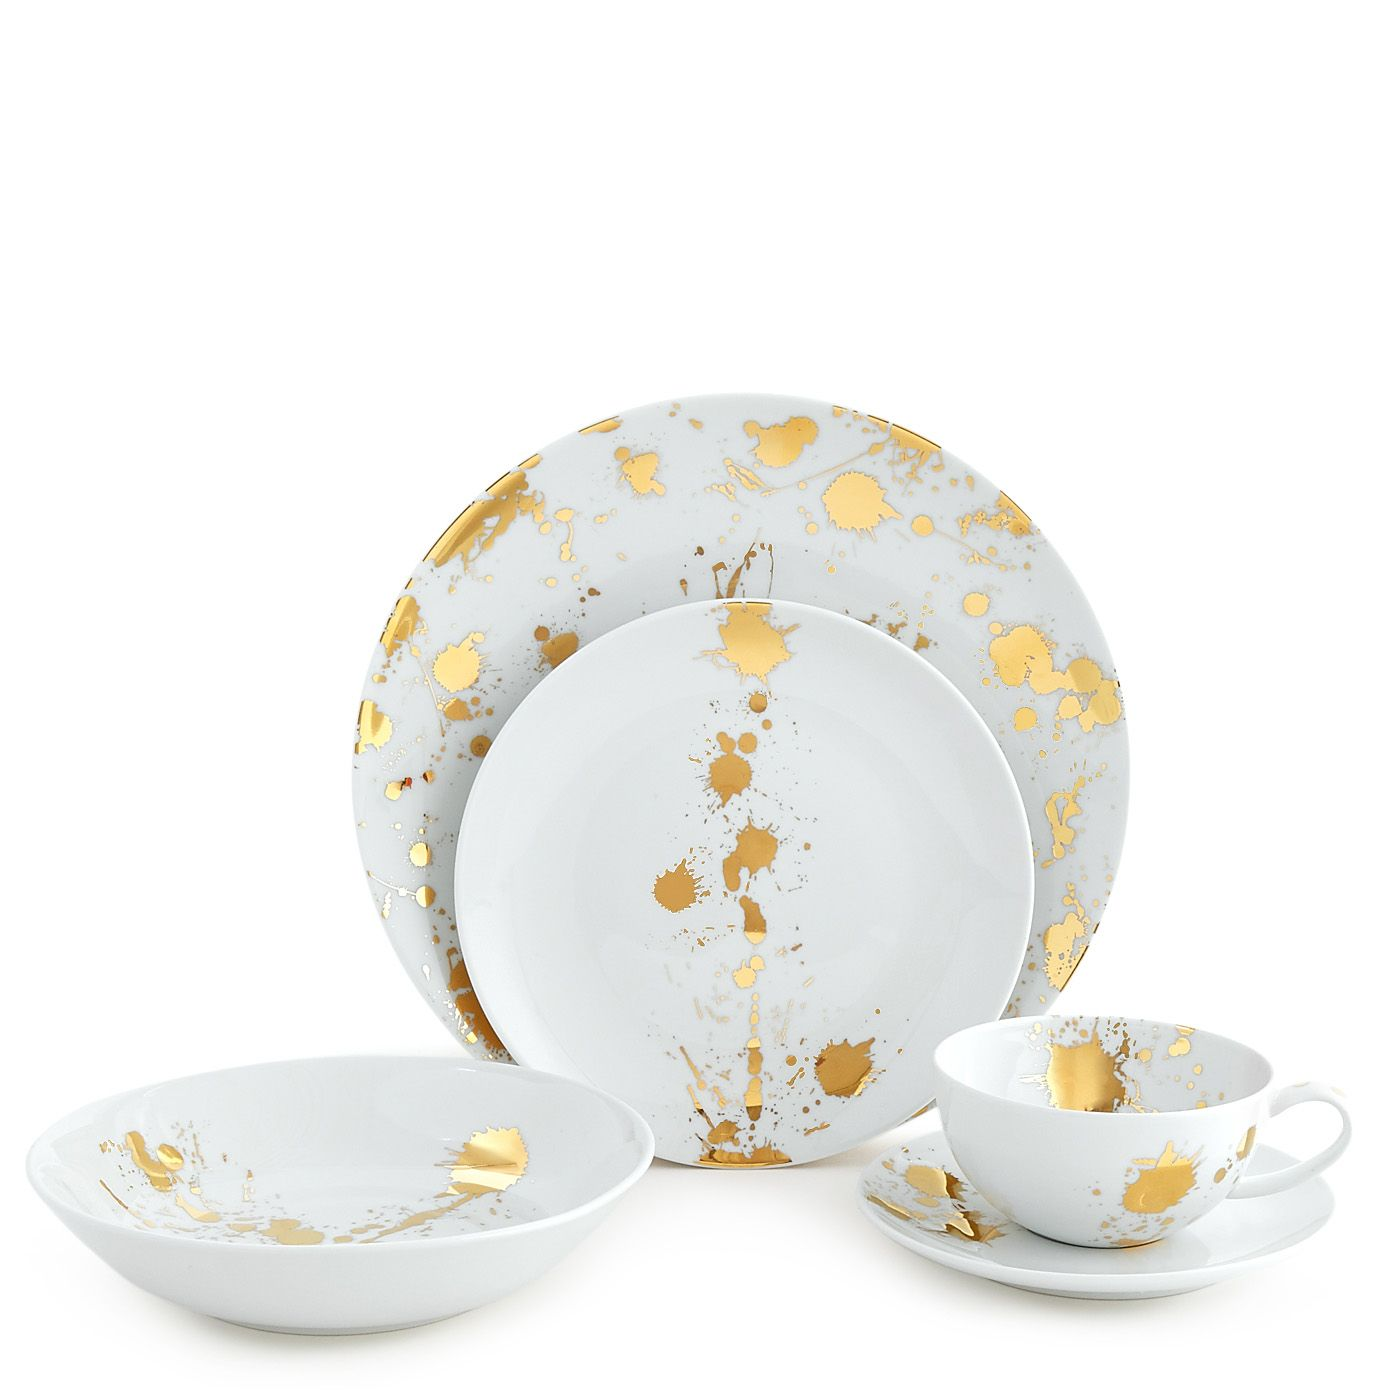 jonathan adler °  piece dinner set  jonathan adler dinner  - forget the fusty needlepoint of yore and embrace our sharp and chic worldwith a little · modern dinnerwareporcelain dinnerwaredinnerware setsluxury